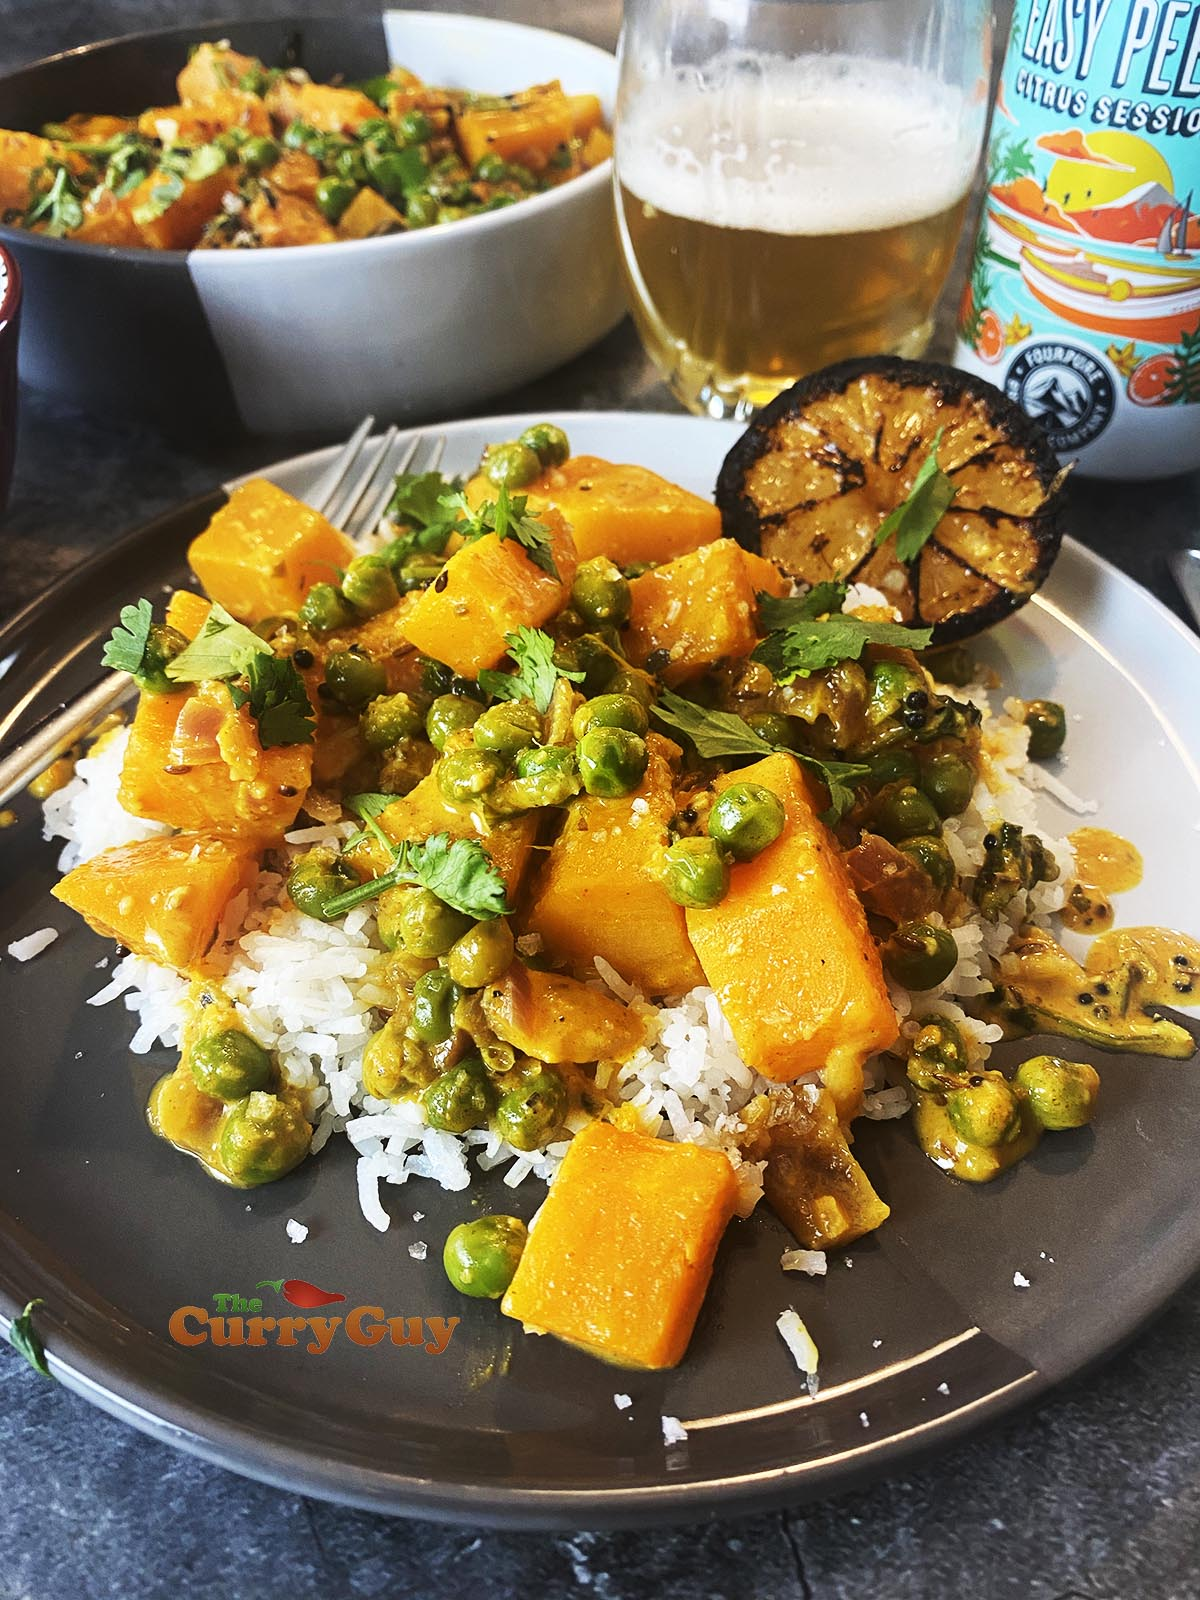 Butternut squash curry ready to eat.